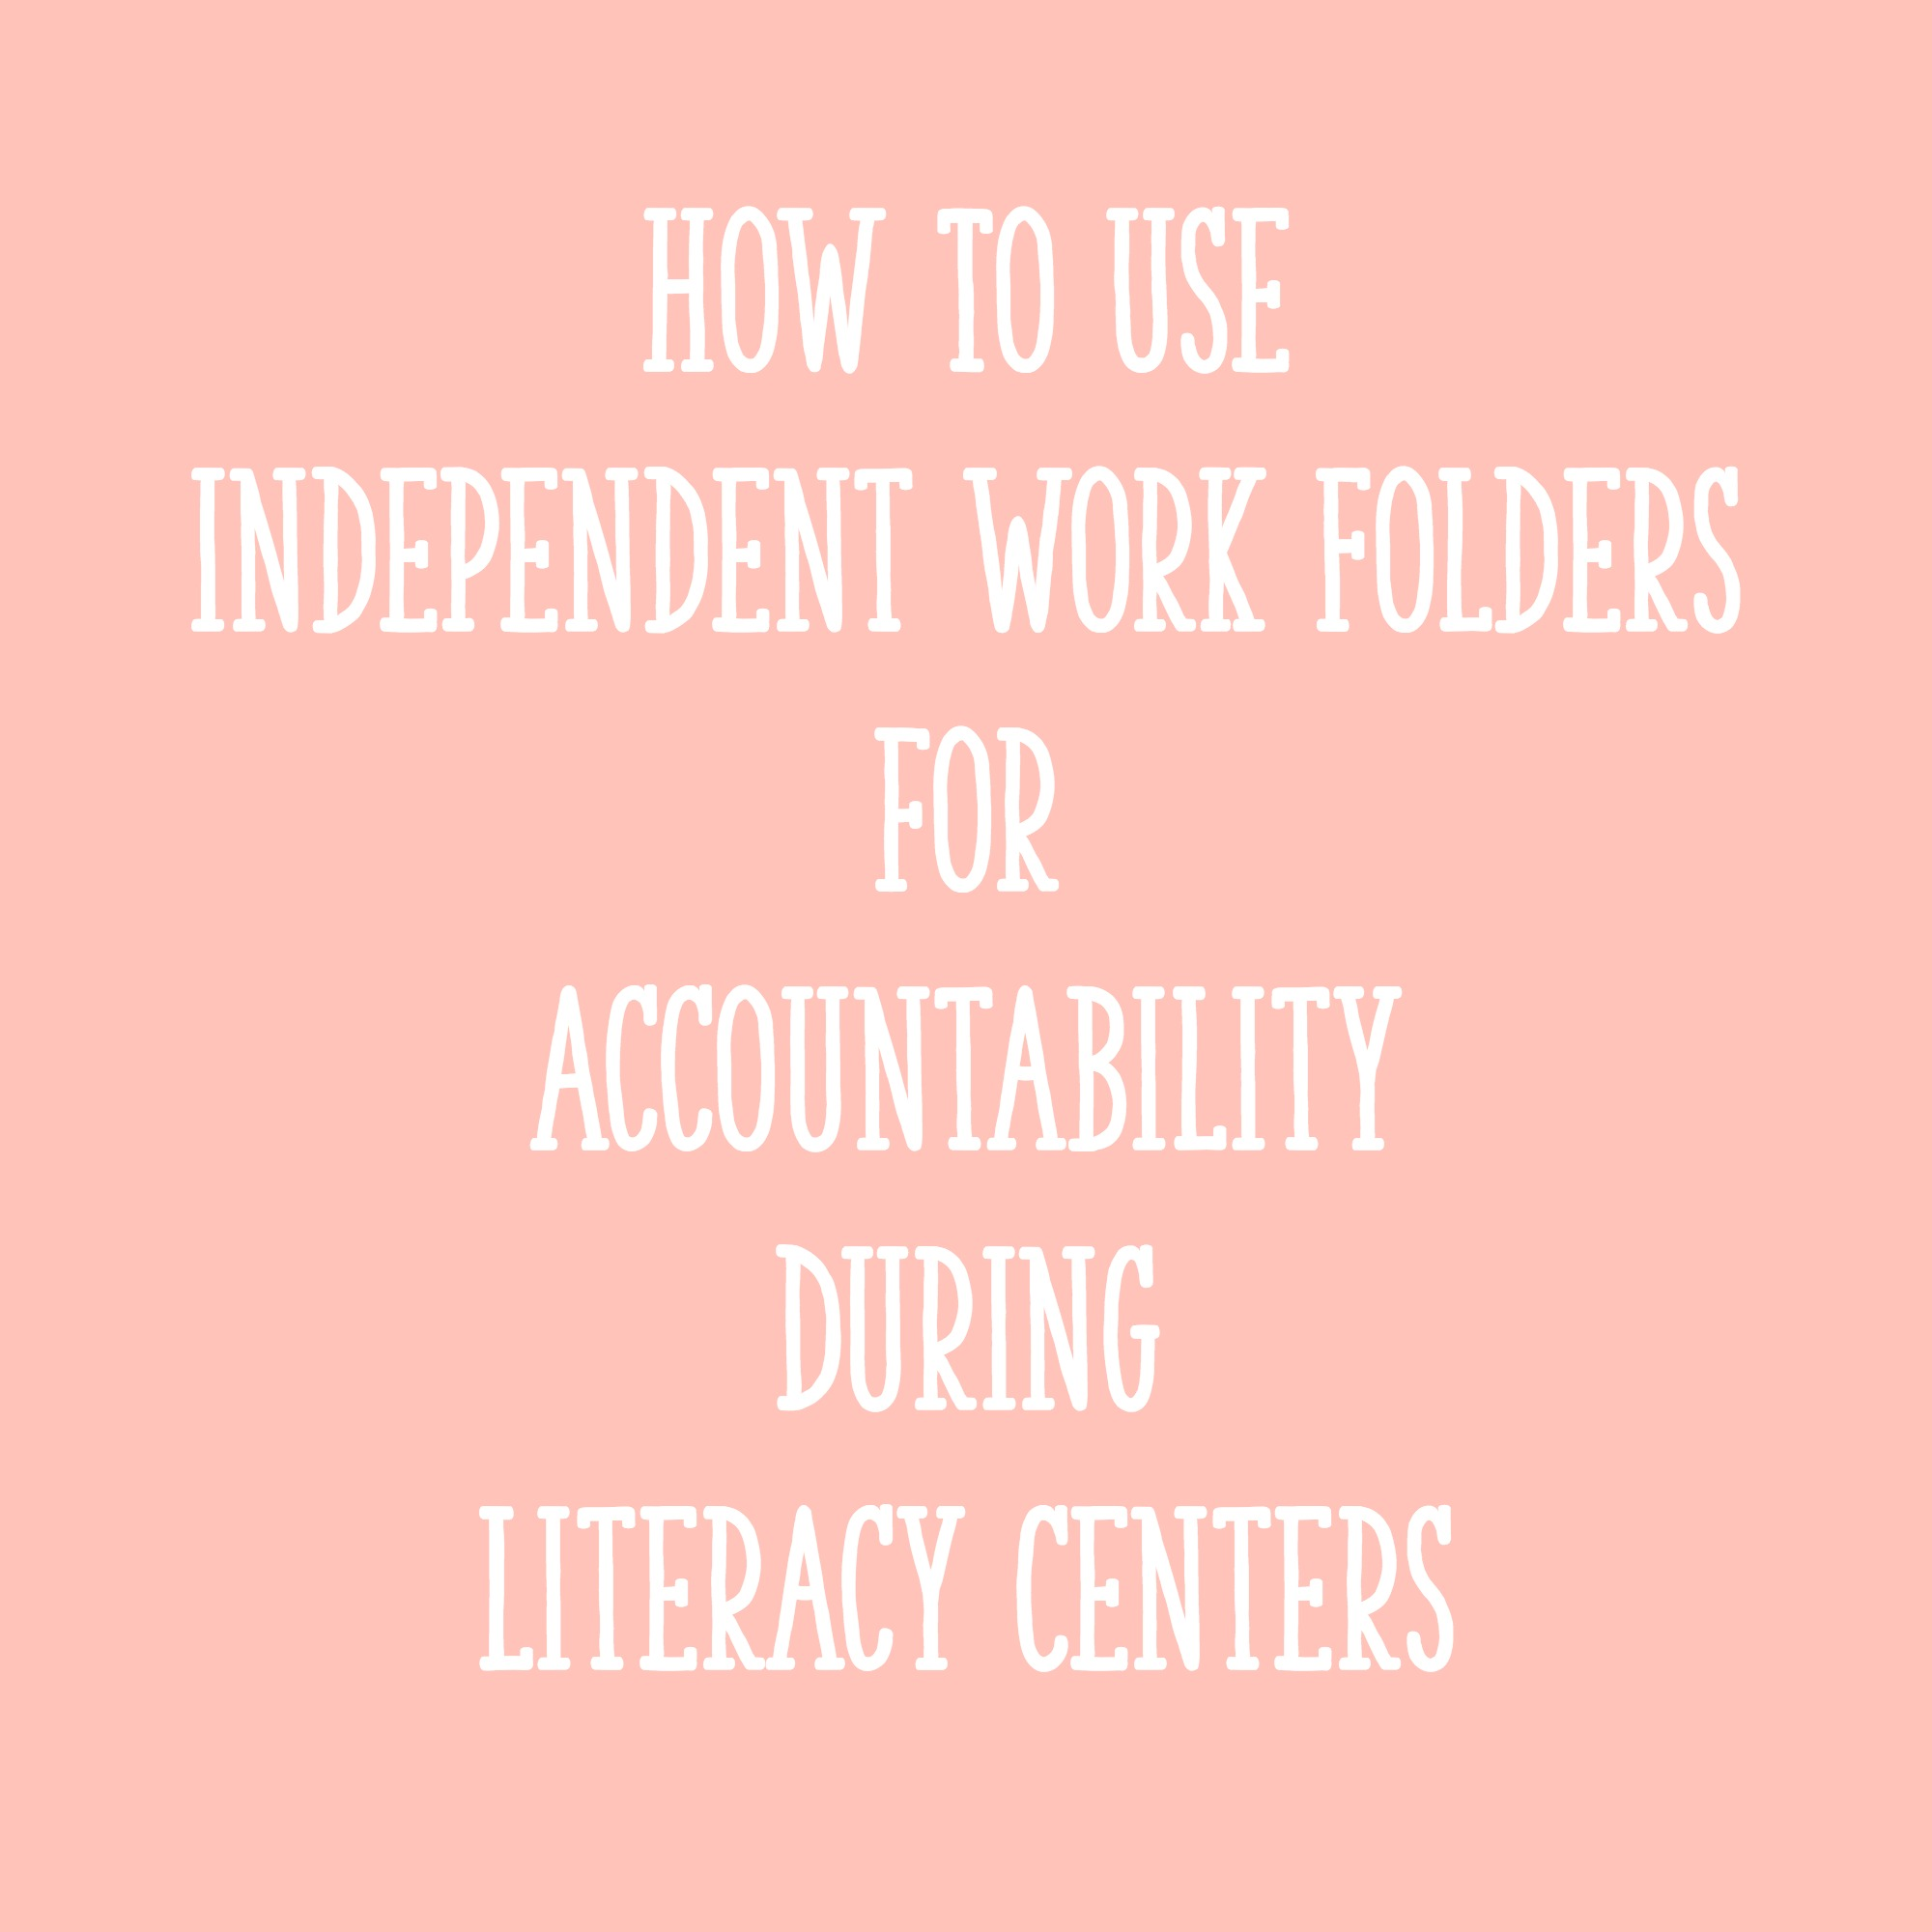 How To Use Independent Work Folders For Accountability